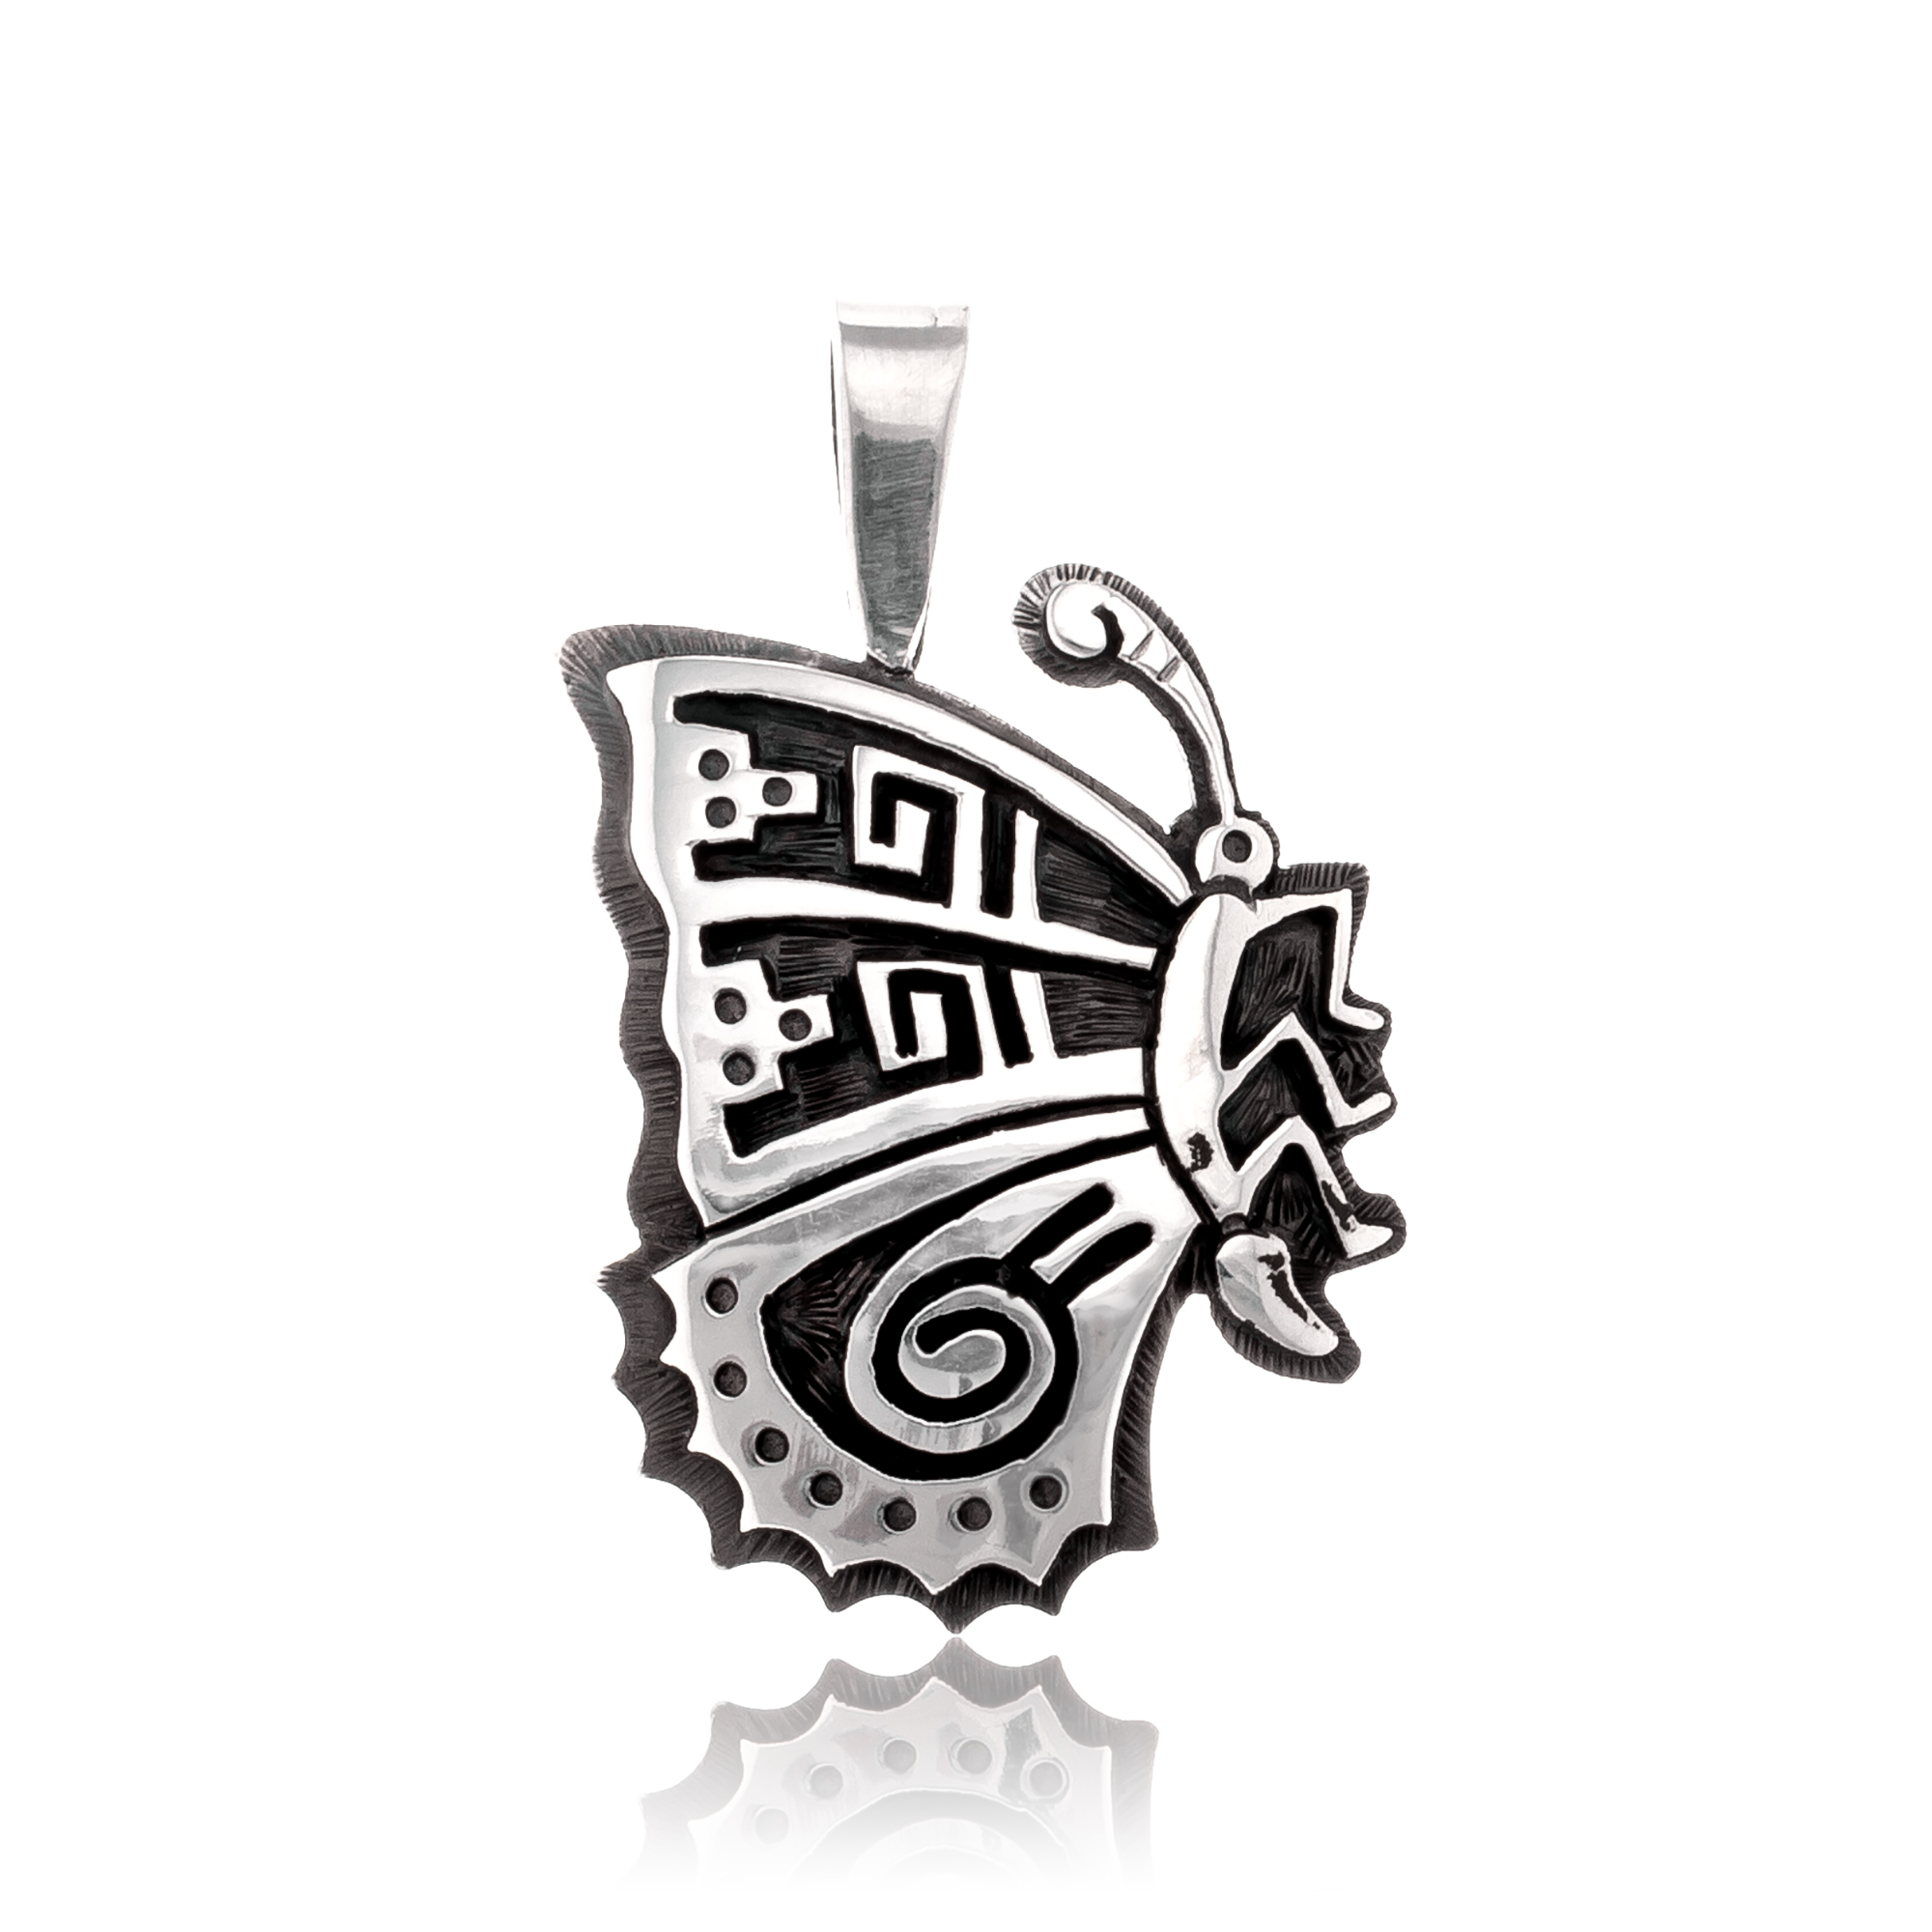 Butterfly .925 Sterling Silver Certified Authentic Handmade Hopi Native American Pendant  24551 Pendants NB180602181539 24551 (by LomaSiiva)